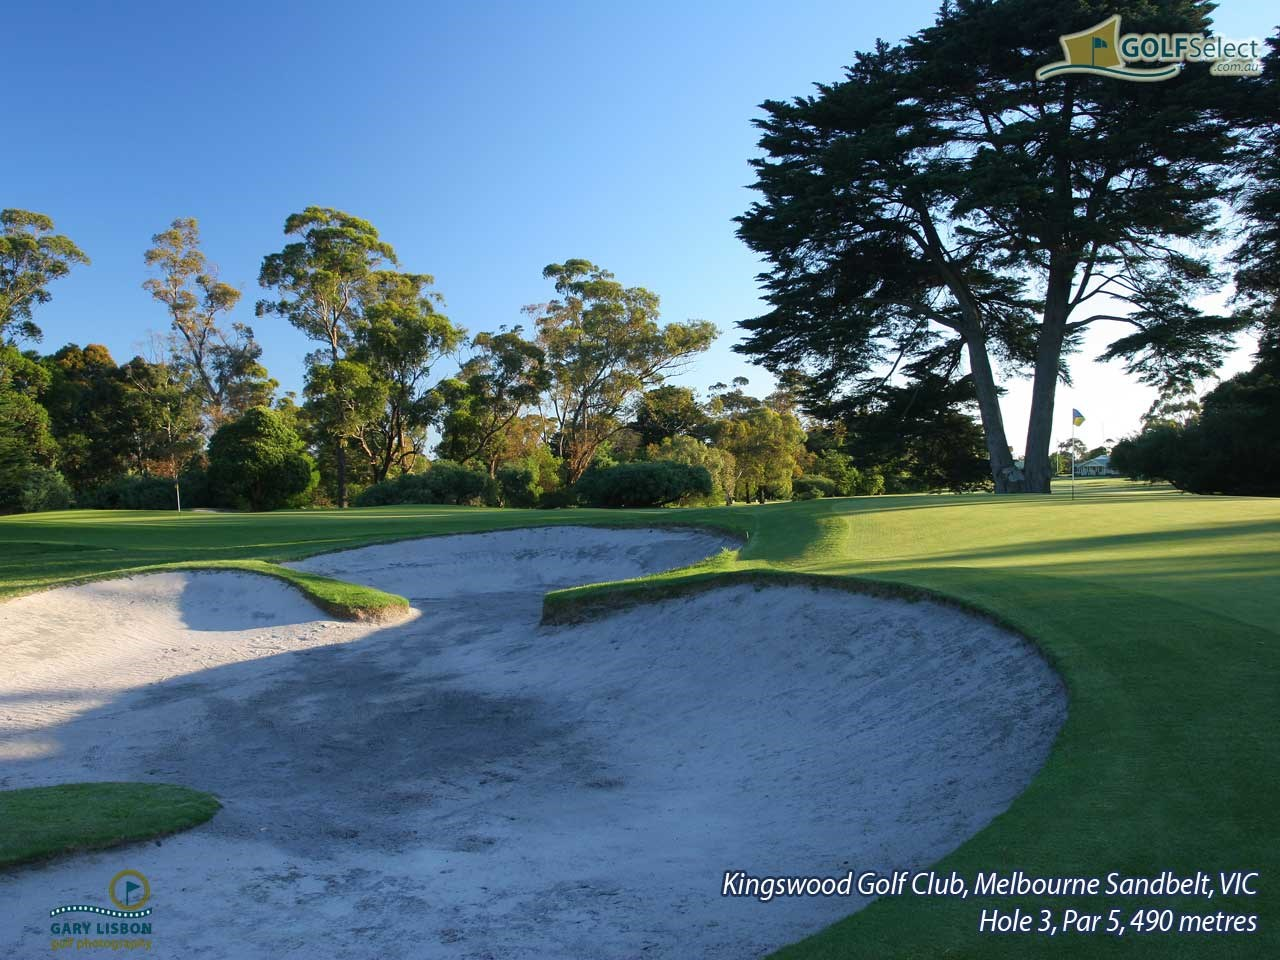 Kingswood Golf Club Dingley Village Victoria 3172